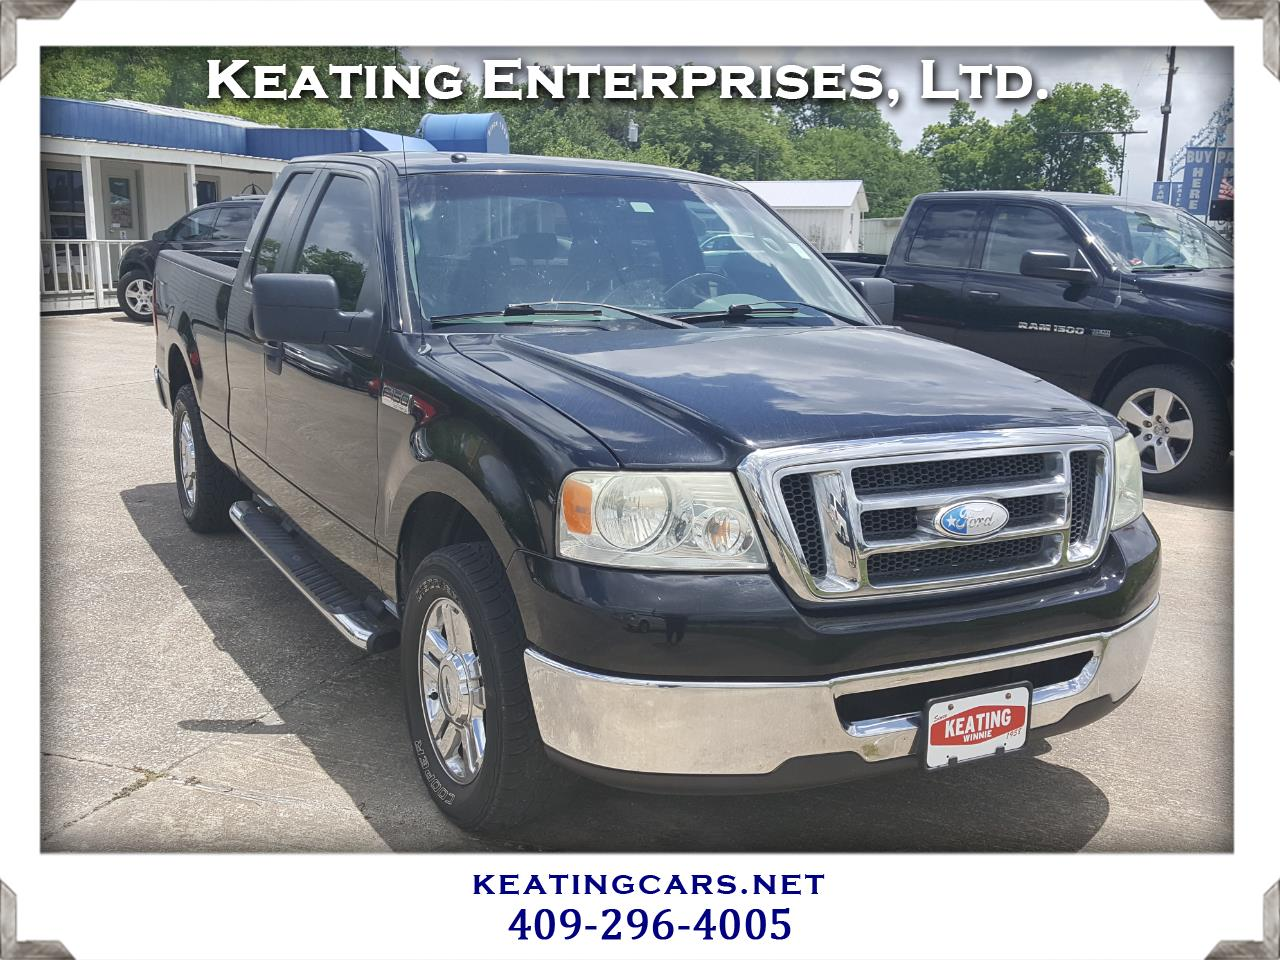 "2007 Ford F-150 2WD Supercab 133"" FX2"